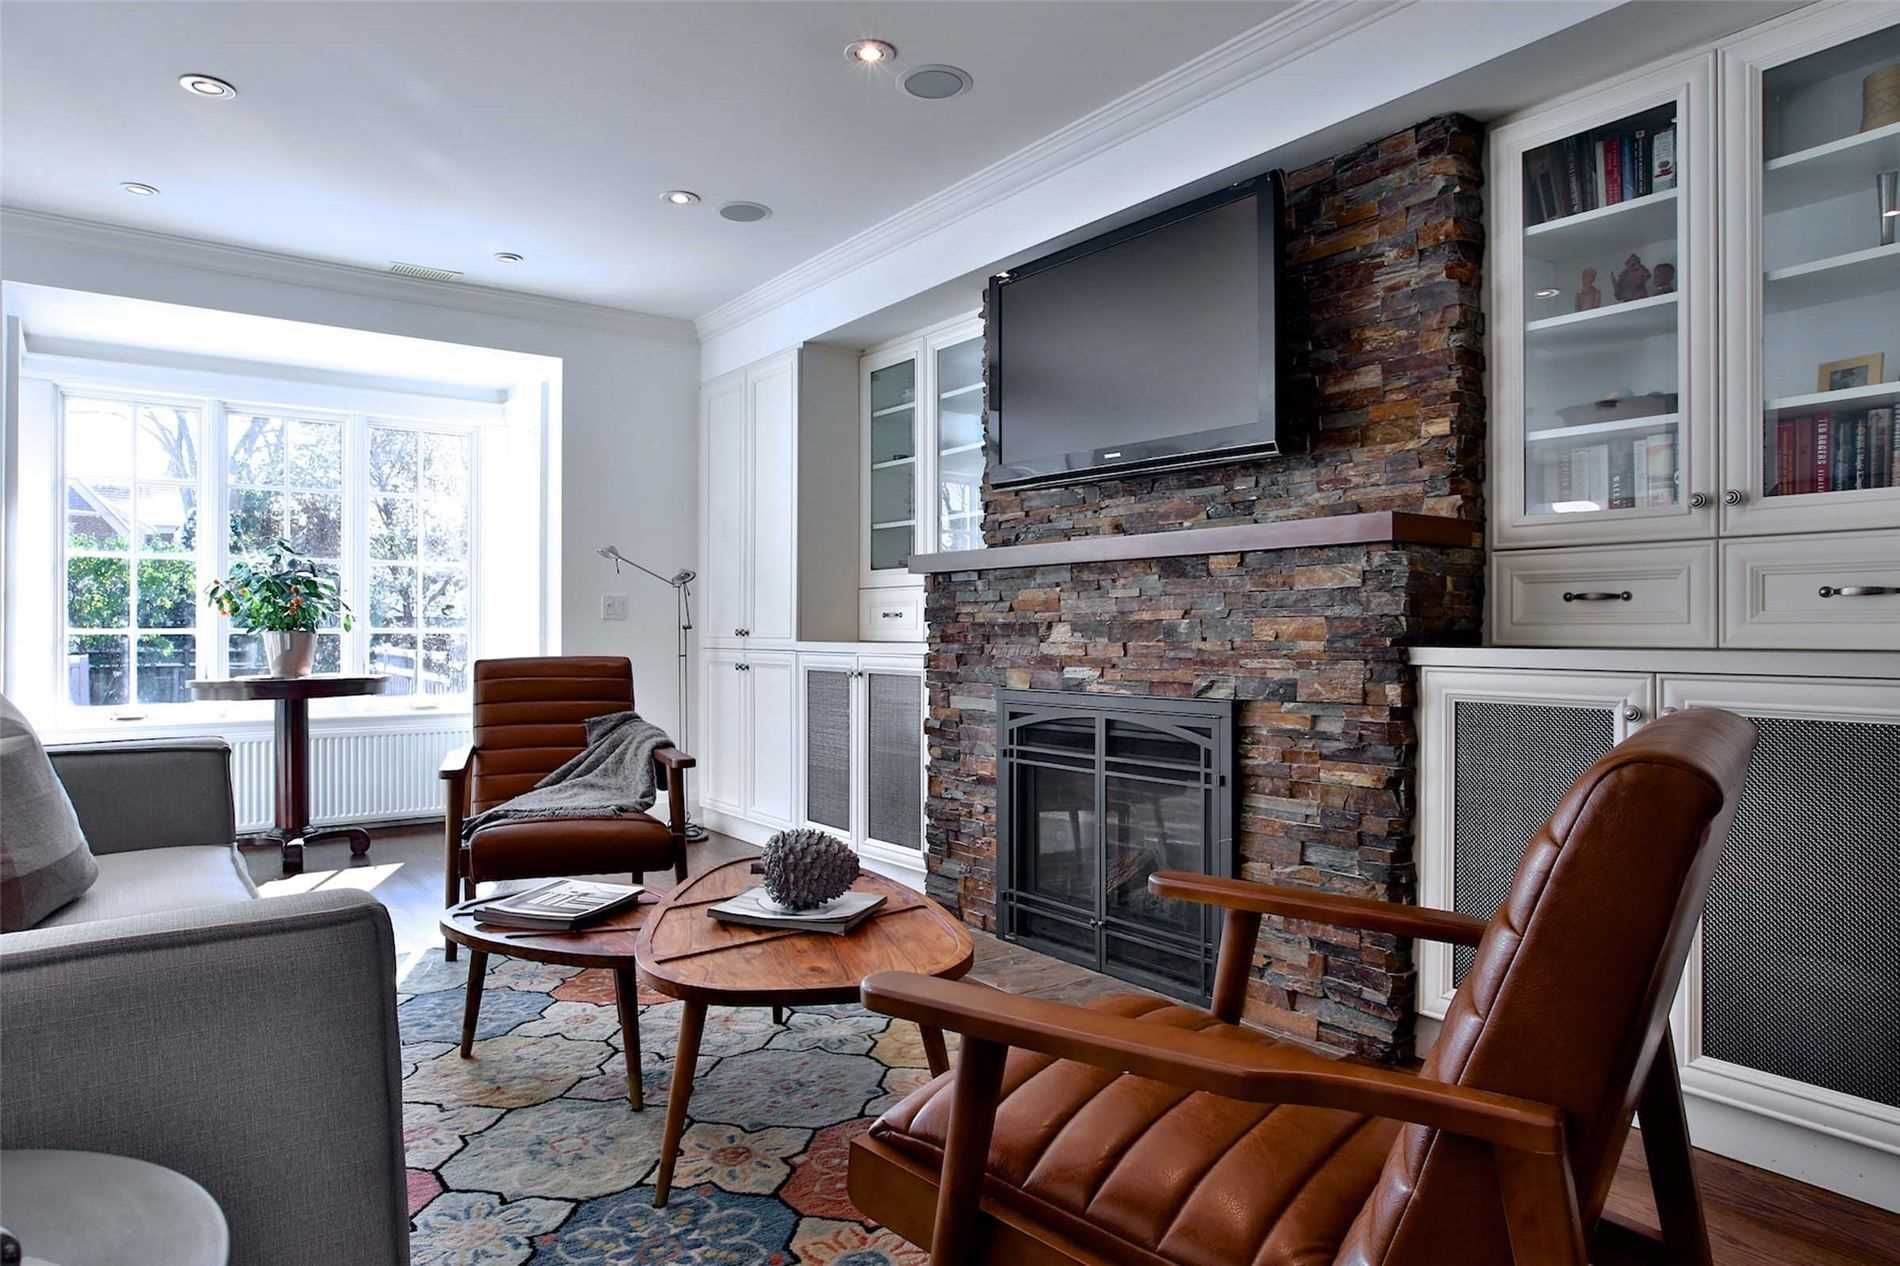 Photo 7: Photos: 181 W Glengrove Avenue in Toronto: Lawrence Park South House (2-Storey) for sale (Toronto C04)  : MLS®# C4633543